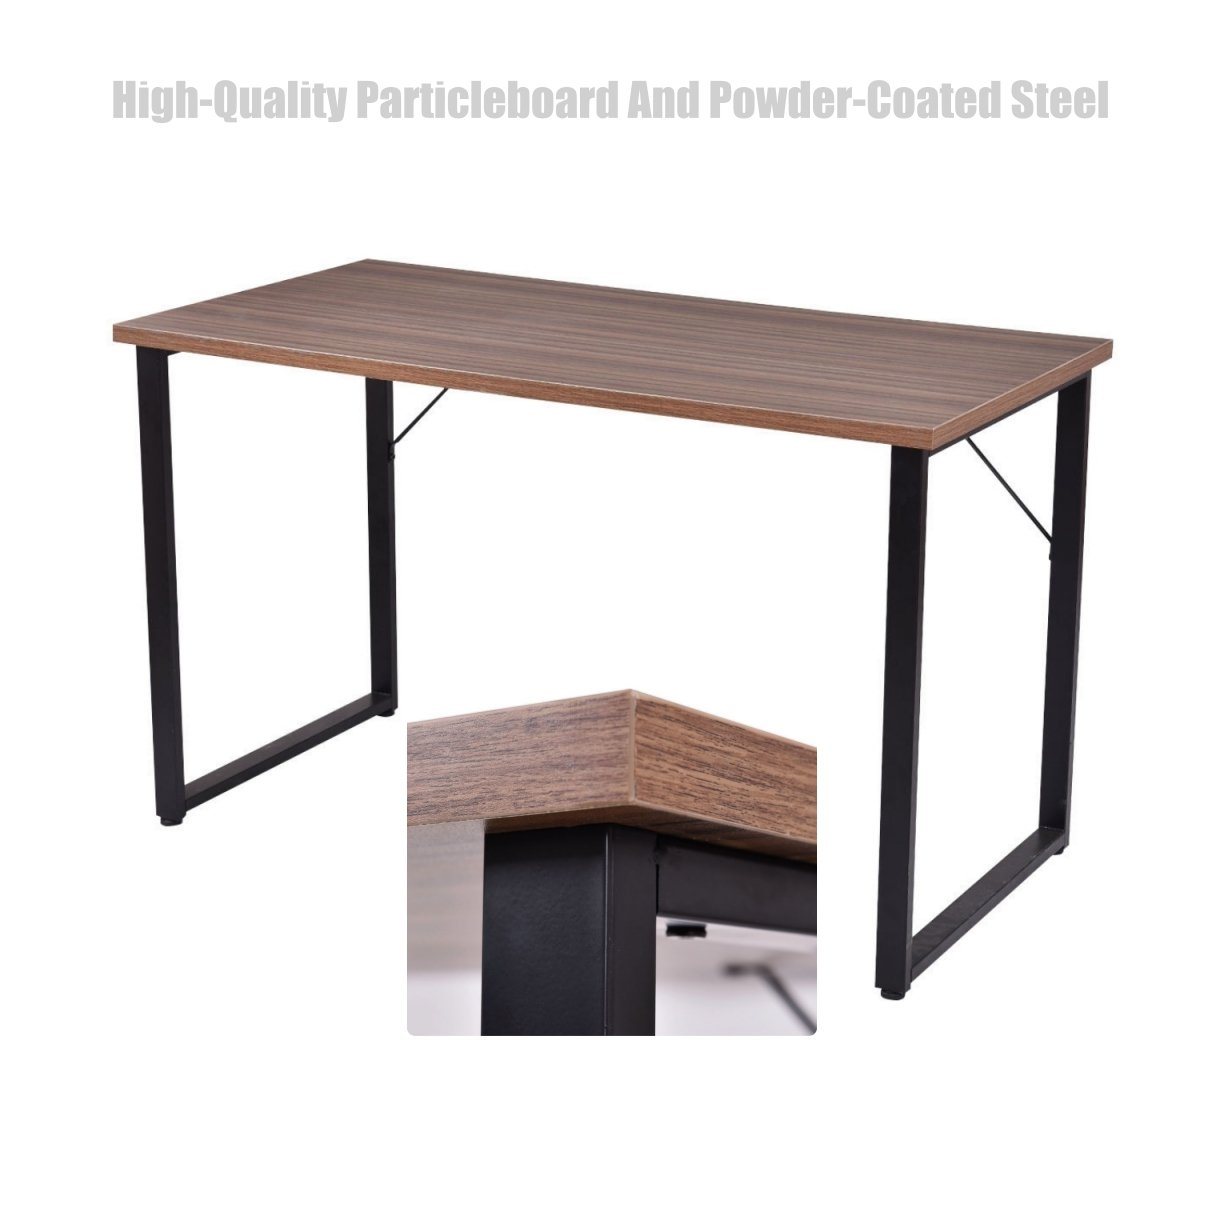 Amazon com laptop computer desk full size workstation solid particleboard powder coated steel frame space saving design home office furniture wood black